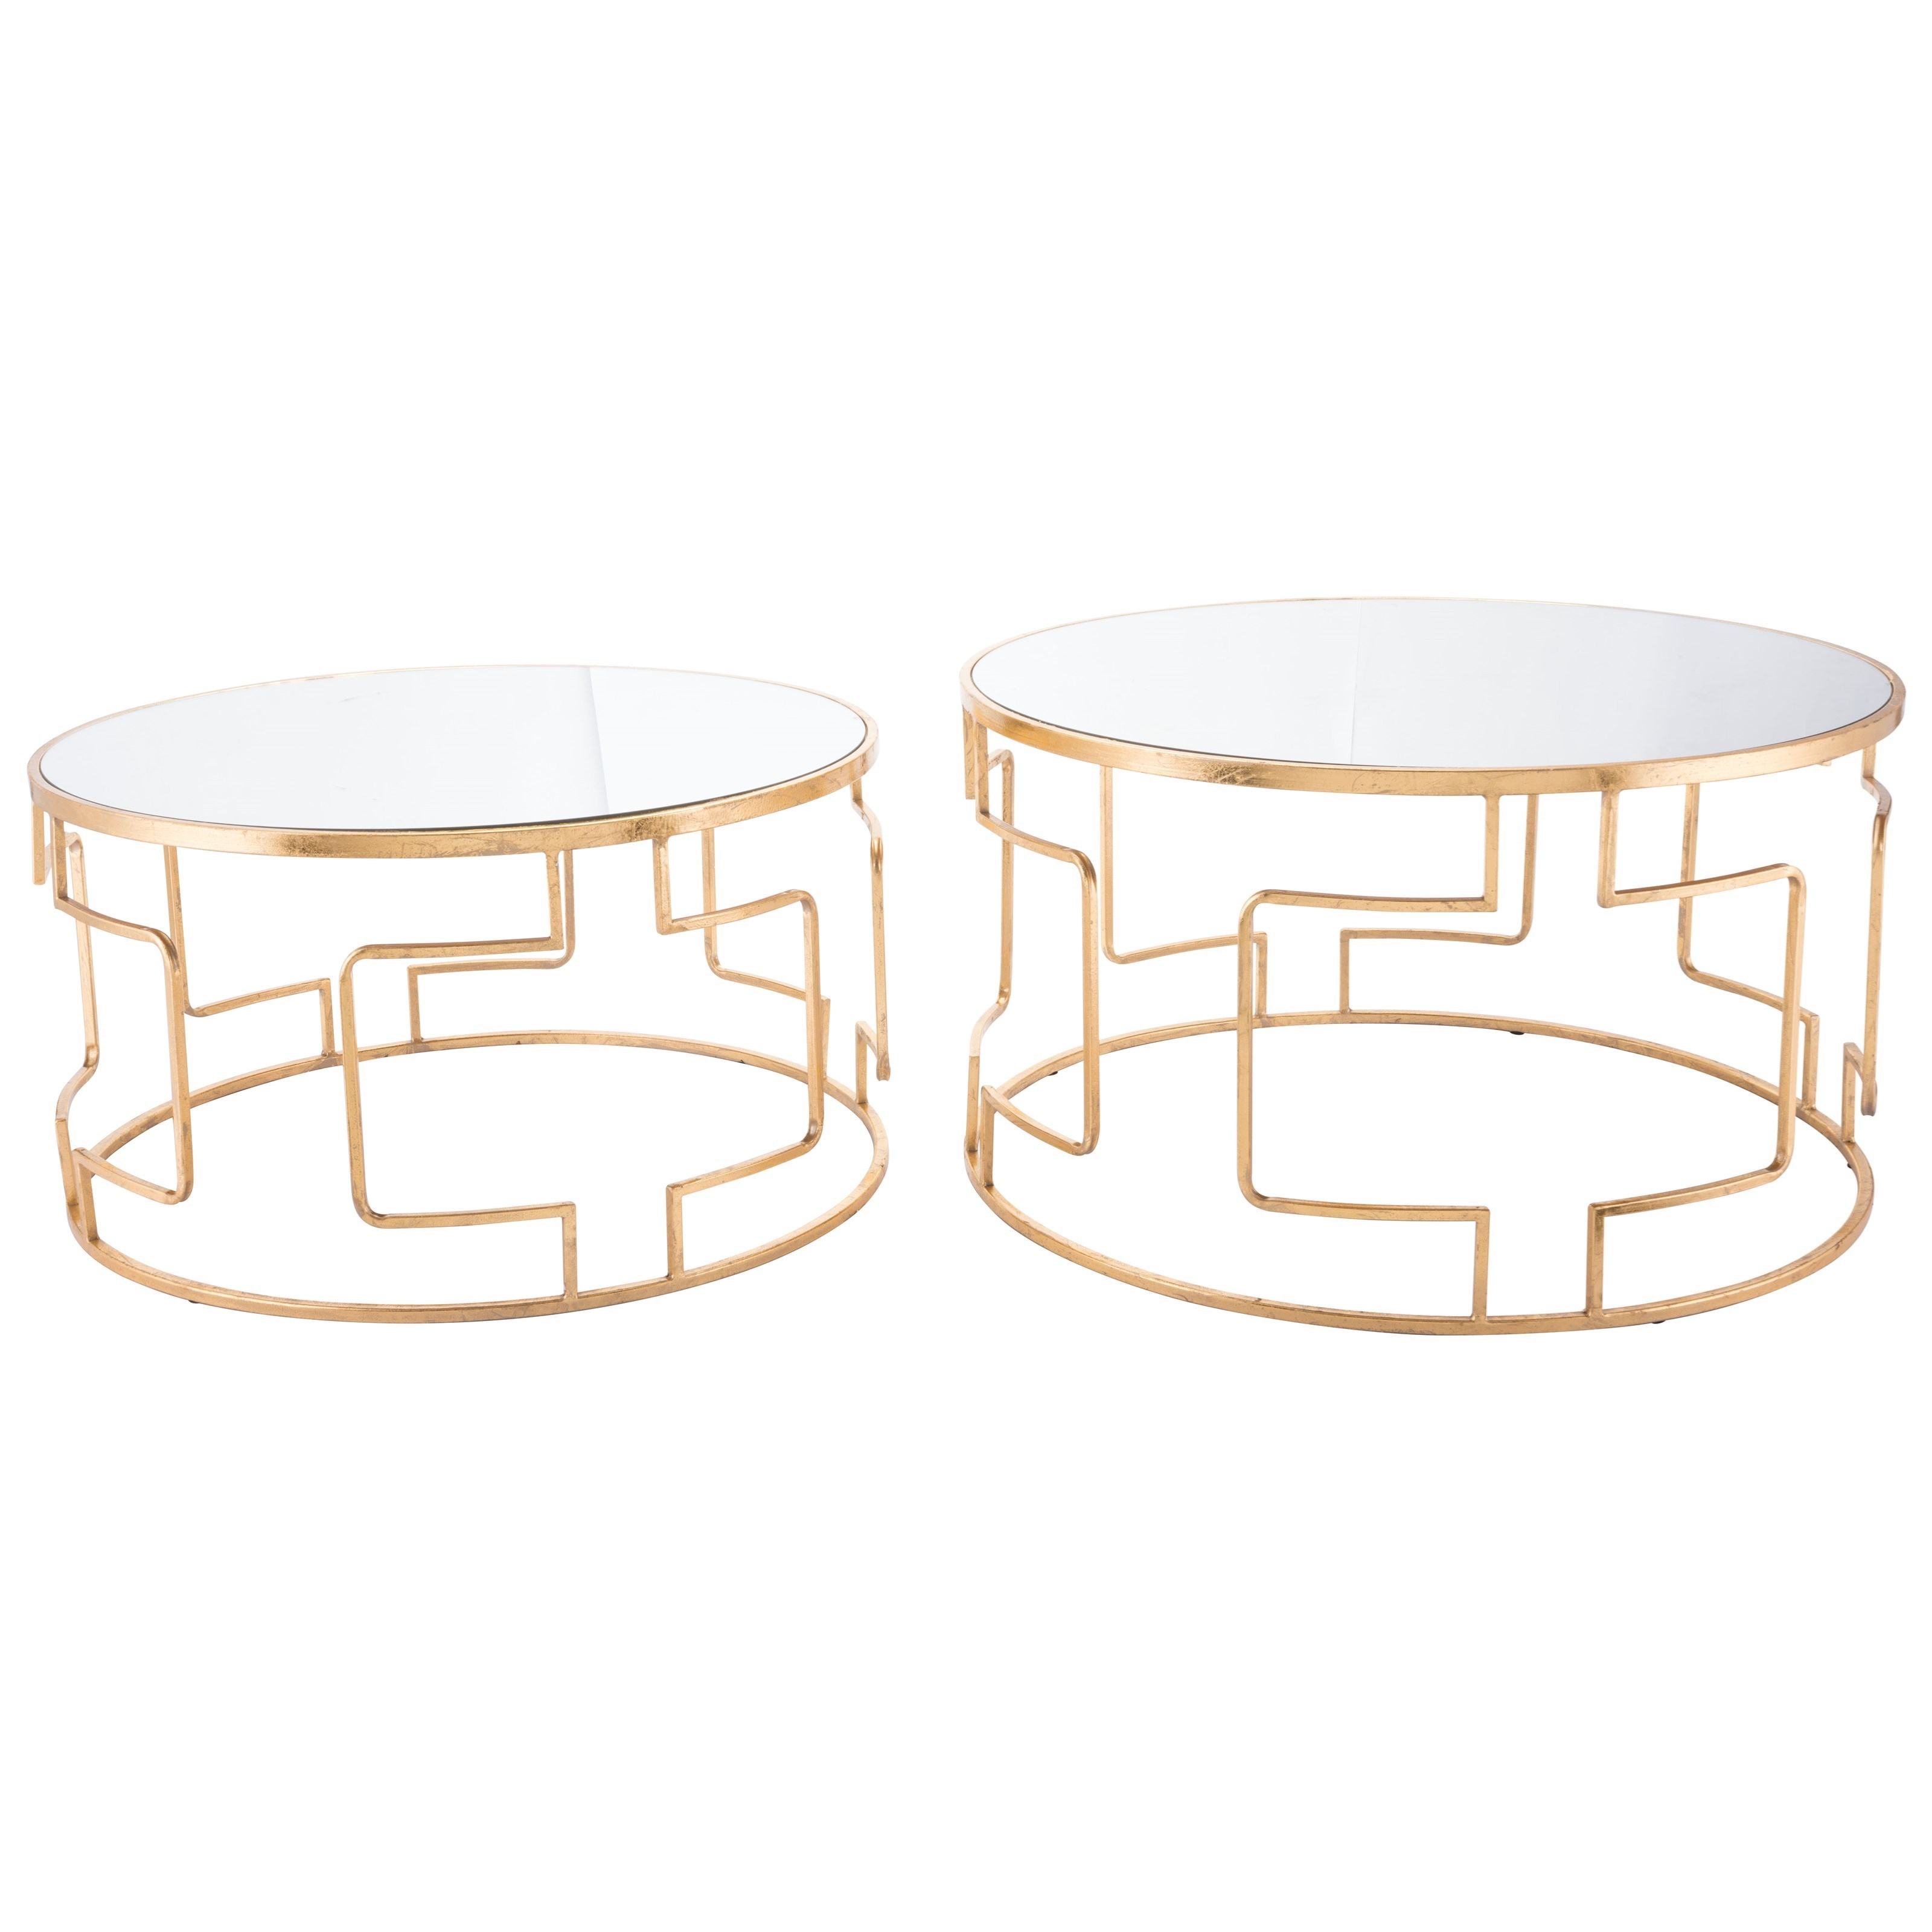 Zuo Accent Tables King Set of 2 Tables - Item Number: A10786